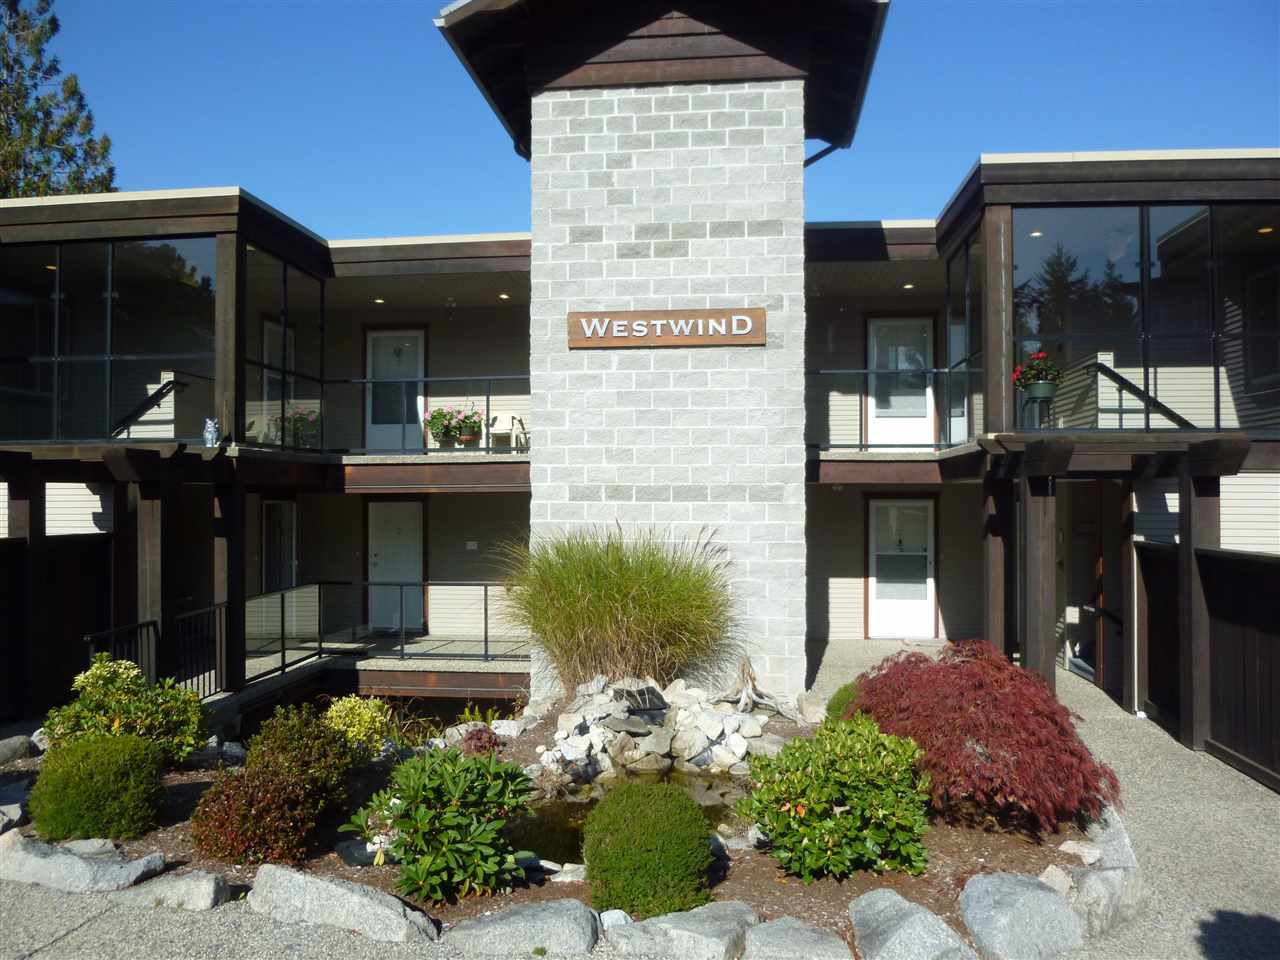 "Main Photo: W201 5780 TRAIL Avenue in Sechelt: Sechelt District Condo for sale in ""THE BLUFF"" (Sunshine Coast)  : MLS®# R2409652"